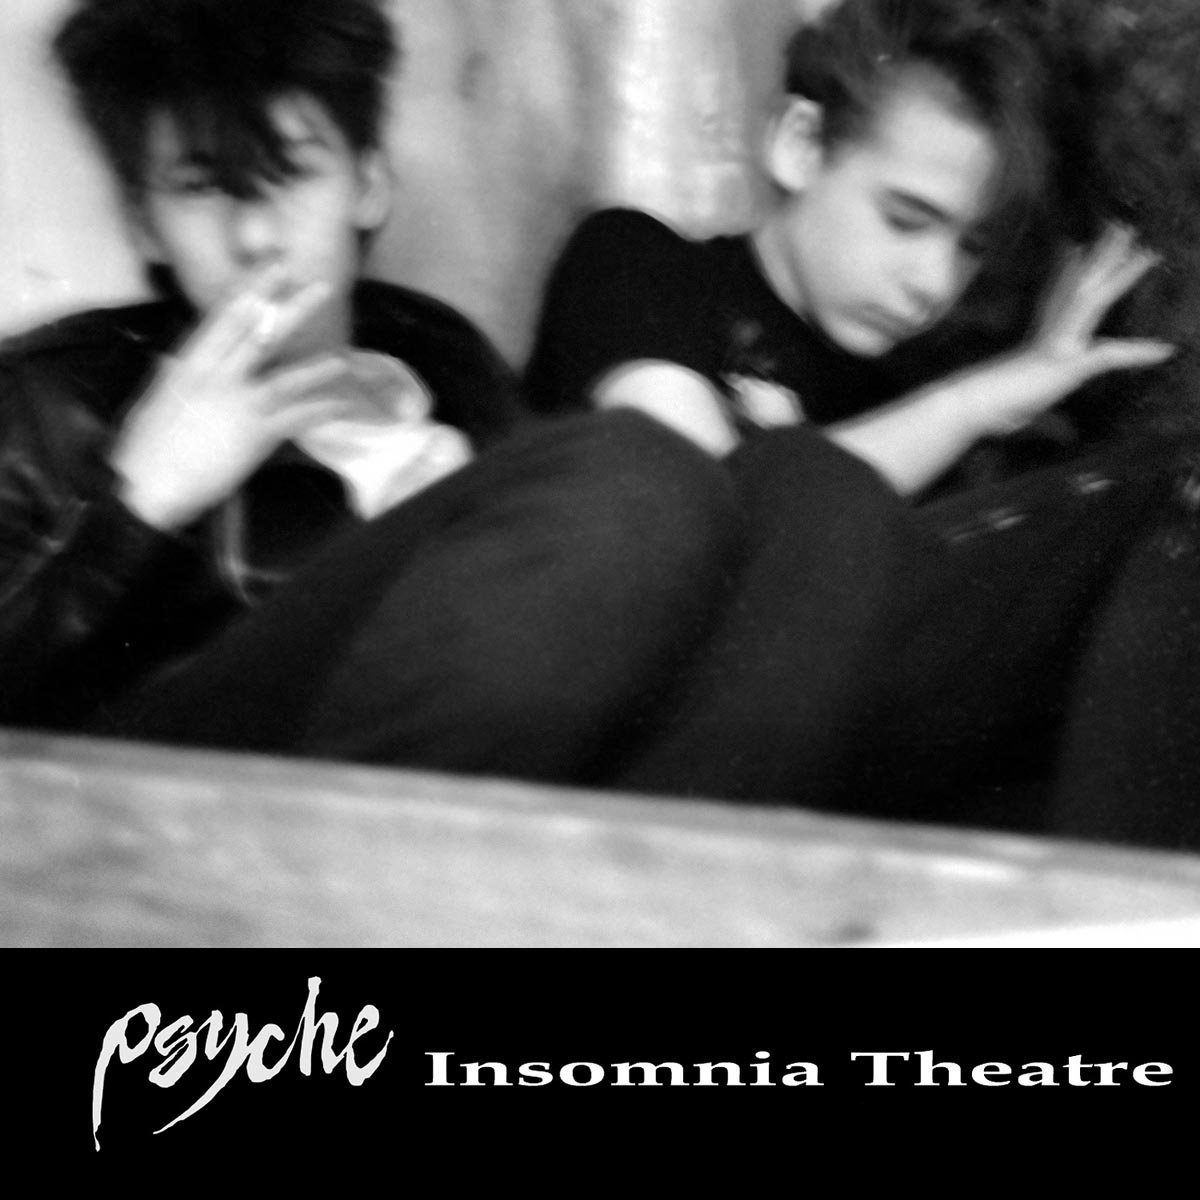 Insomnia Opening large release sale Theatre trend rank